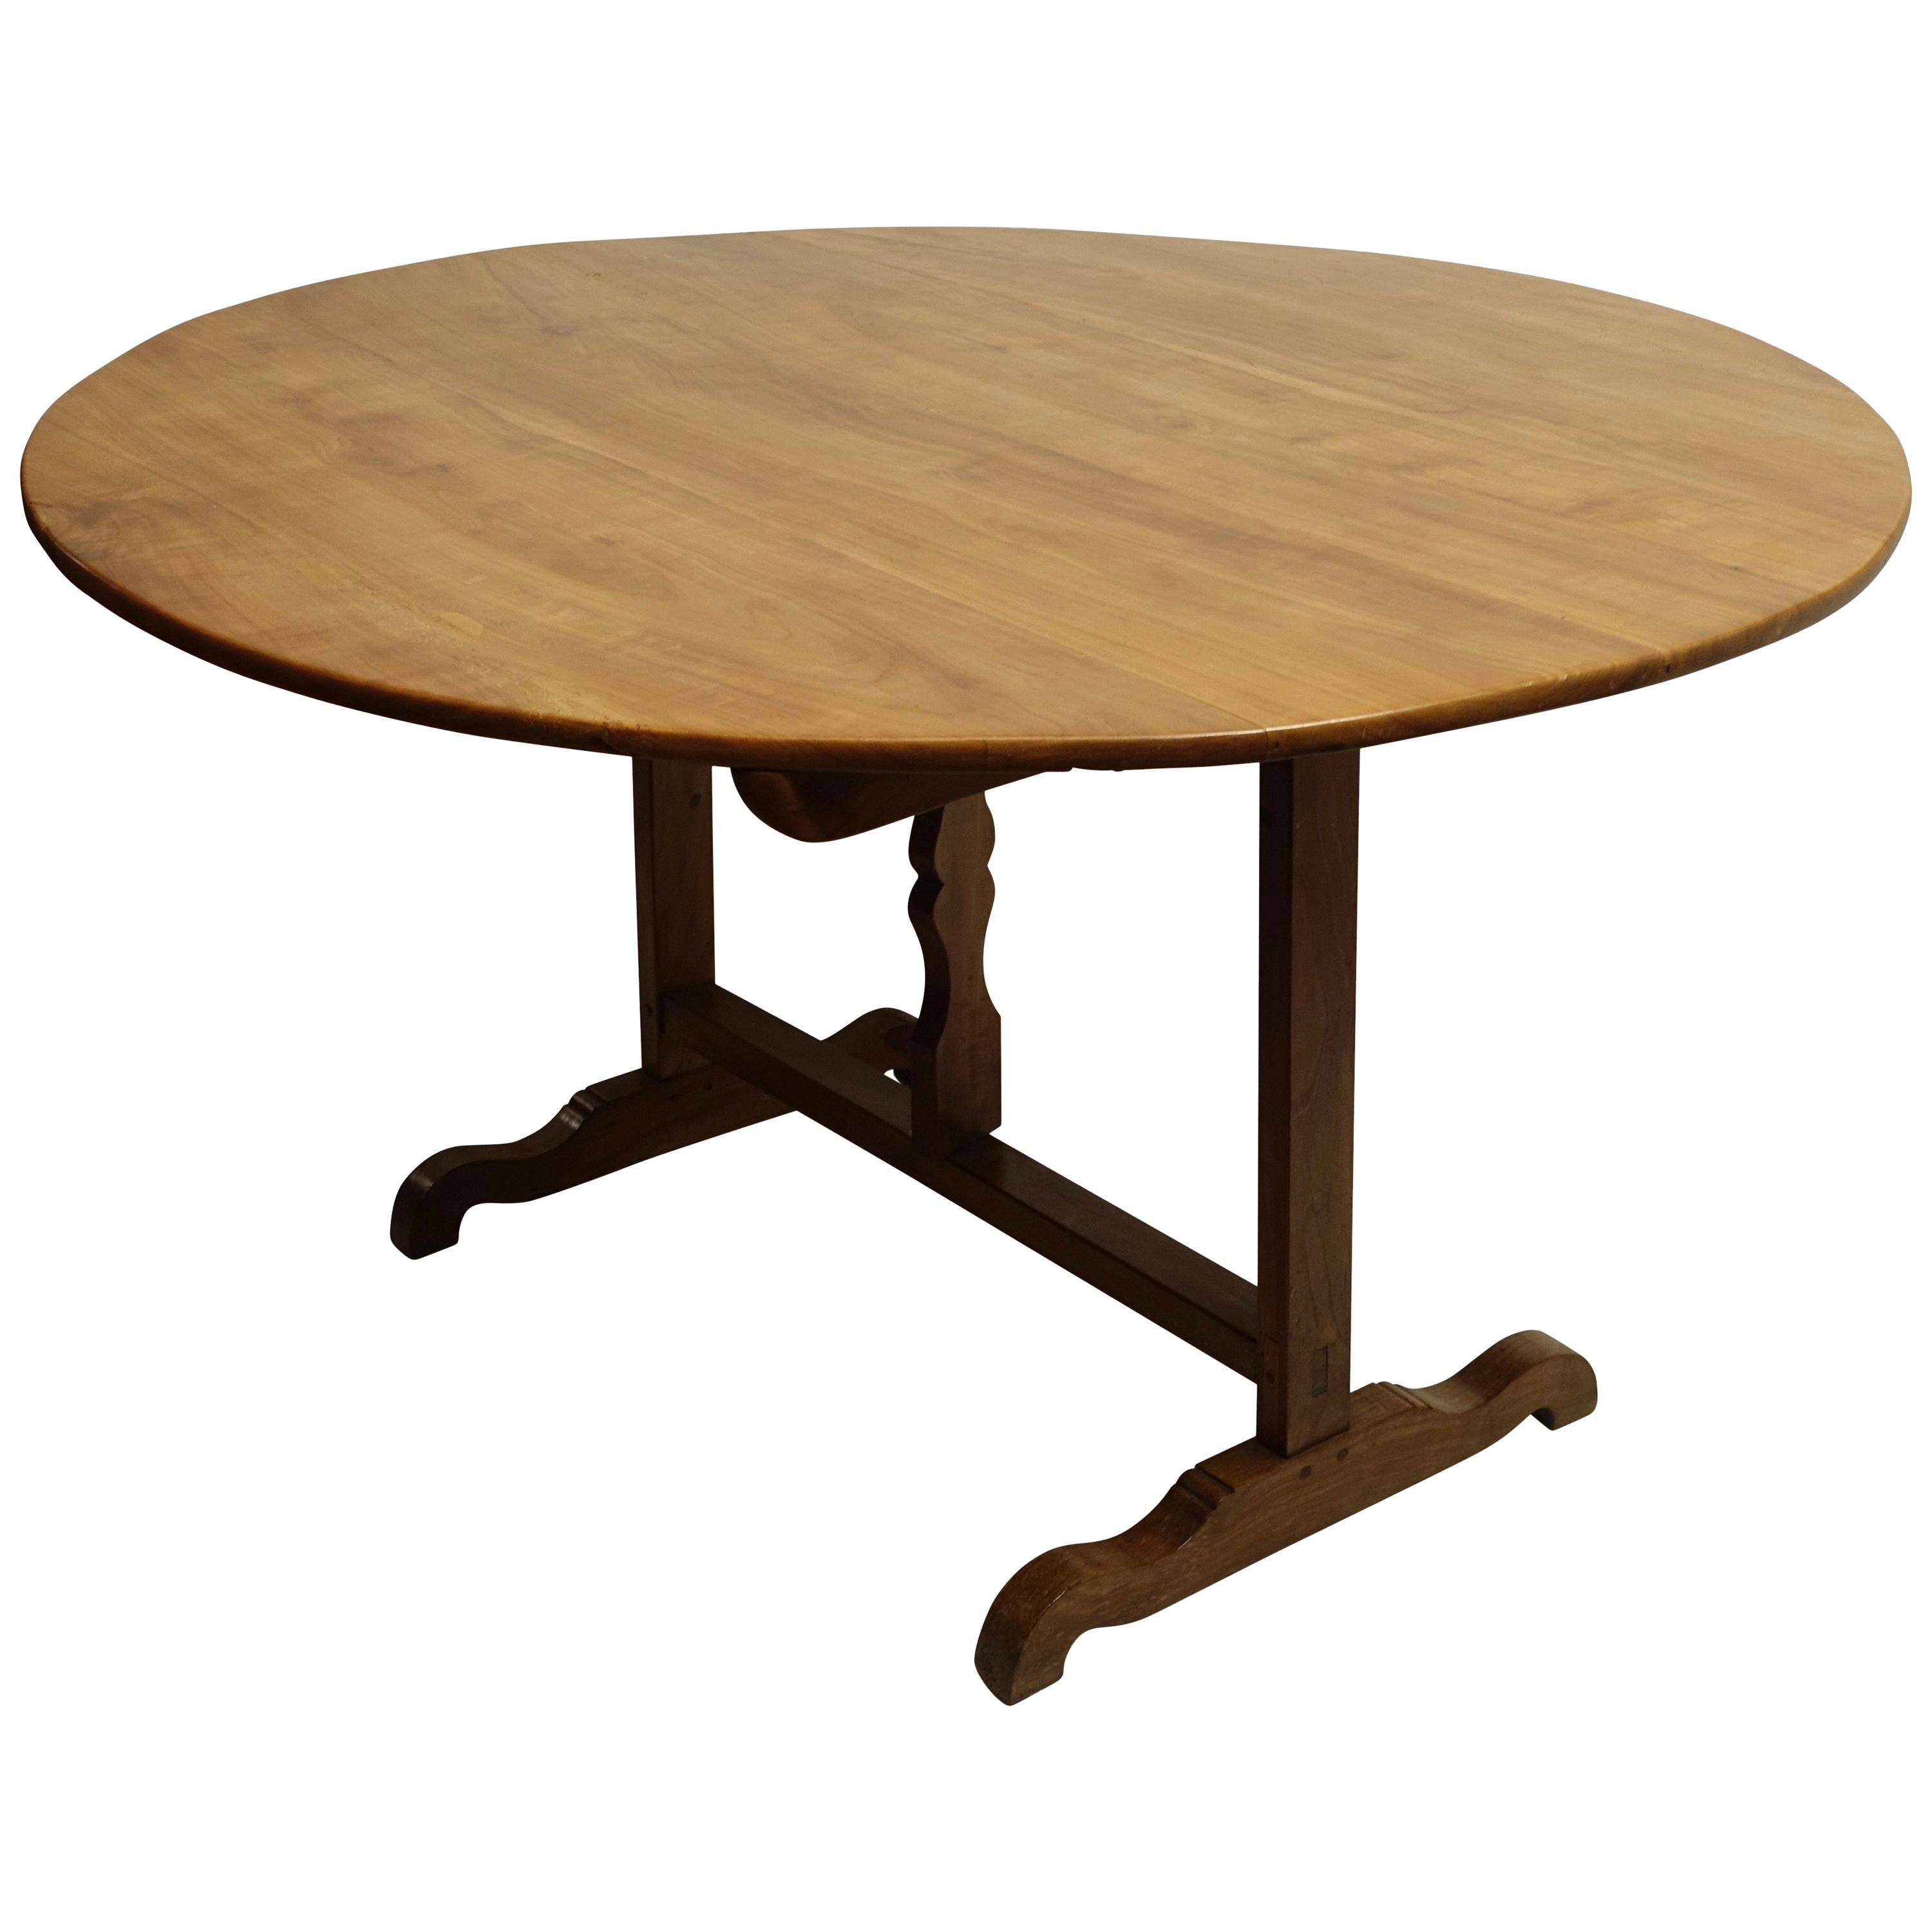 Large Round Cherrywood Wine Tasting Table, French, 19th Century